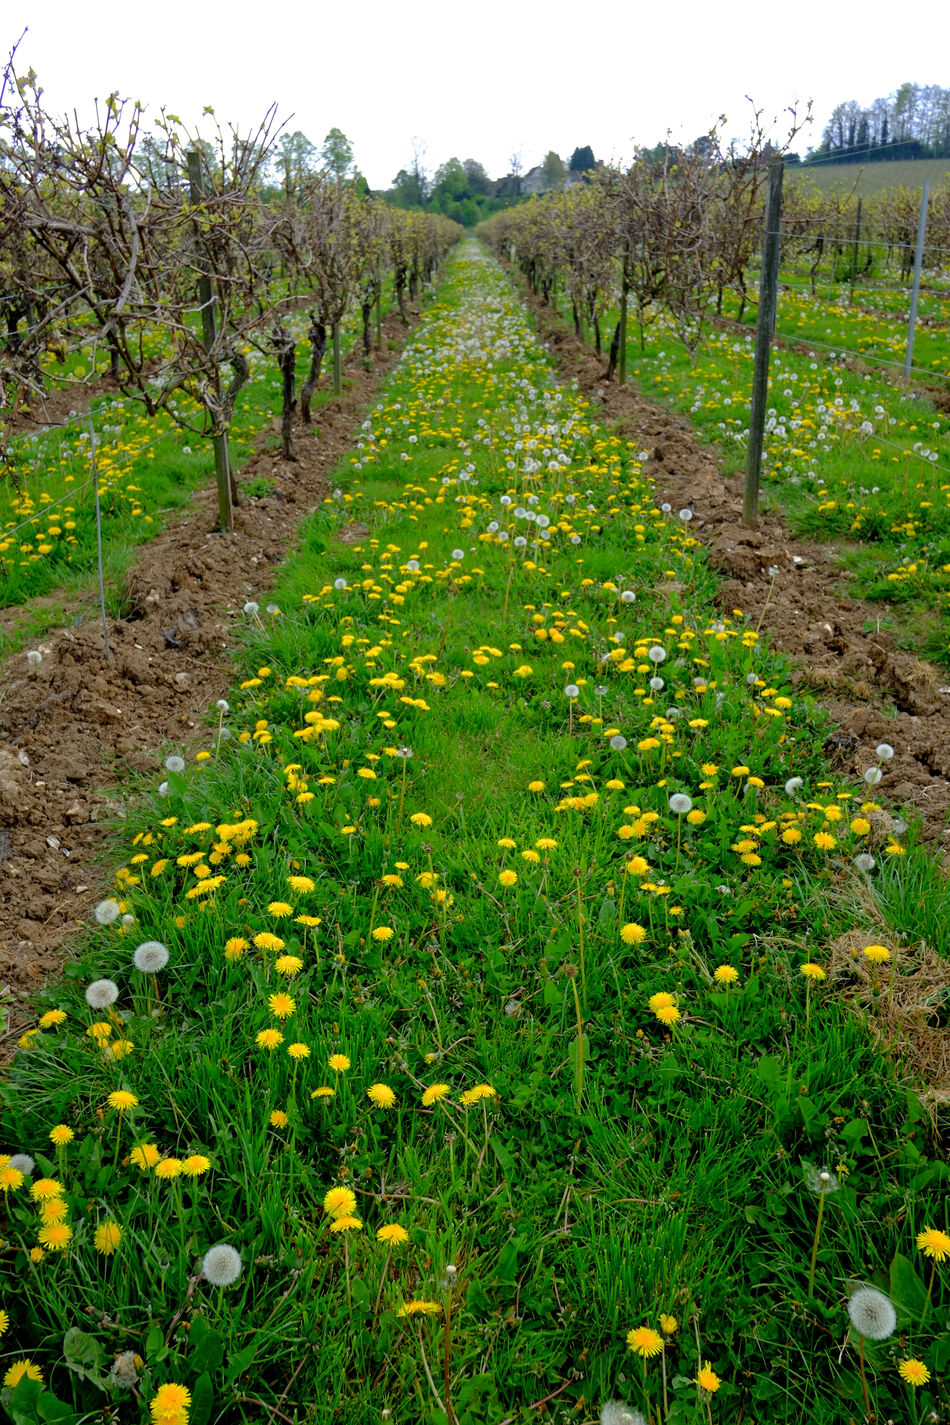 Vineyard in the spring Agriculture Agriculture Countryside Crop  Cultivated Farm Farm Field Fresh Grapes Growth Growth Landscape Nature Nature No People Organic Plants Rural Scene Scenics Spring Tranquil Scene Tranquility Vineyard Wine Break The Mold